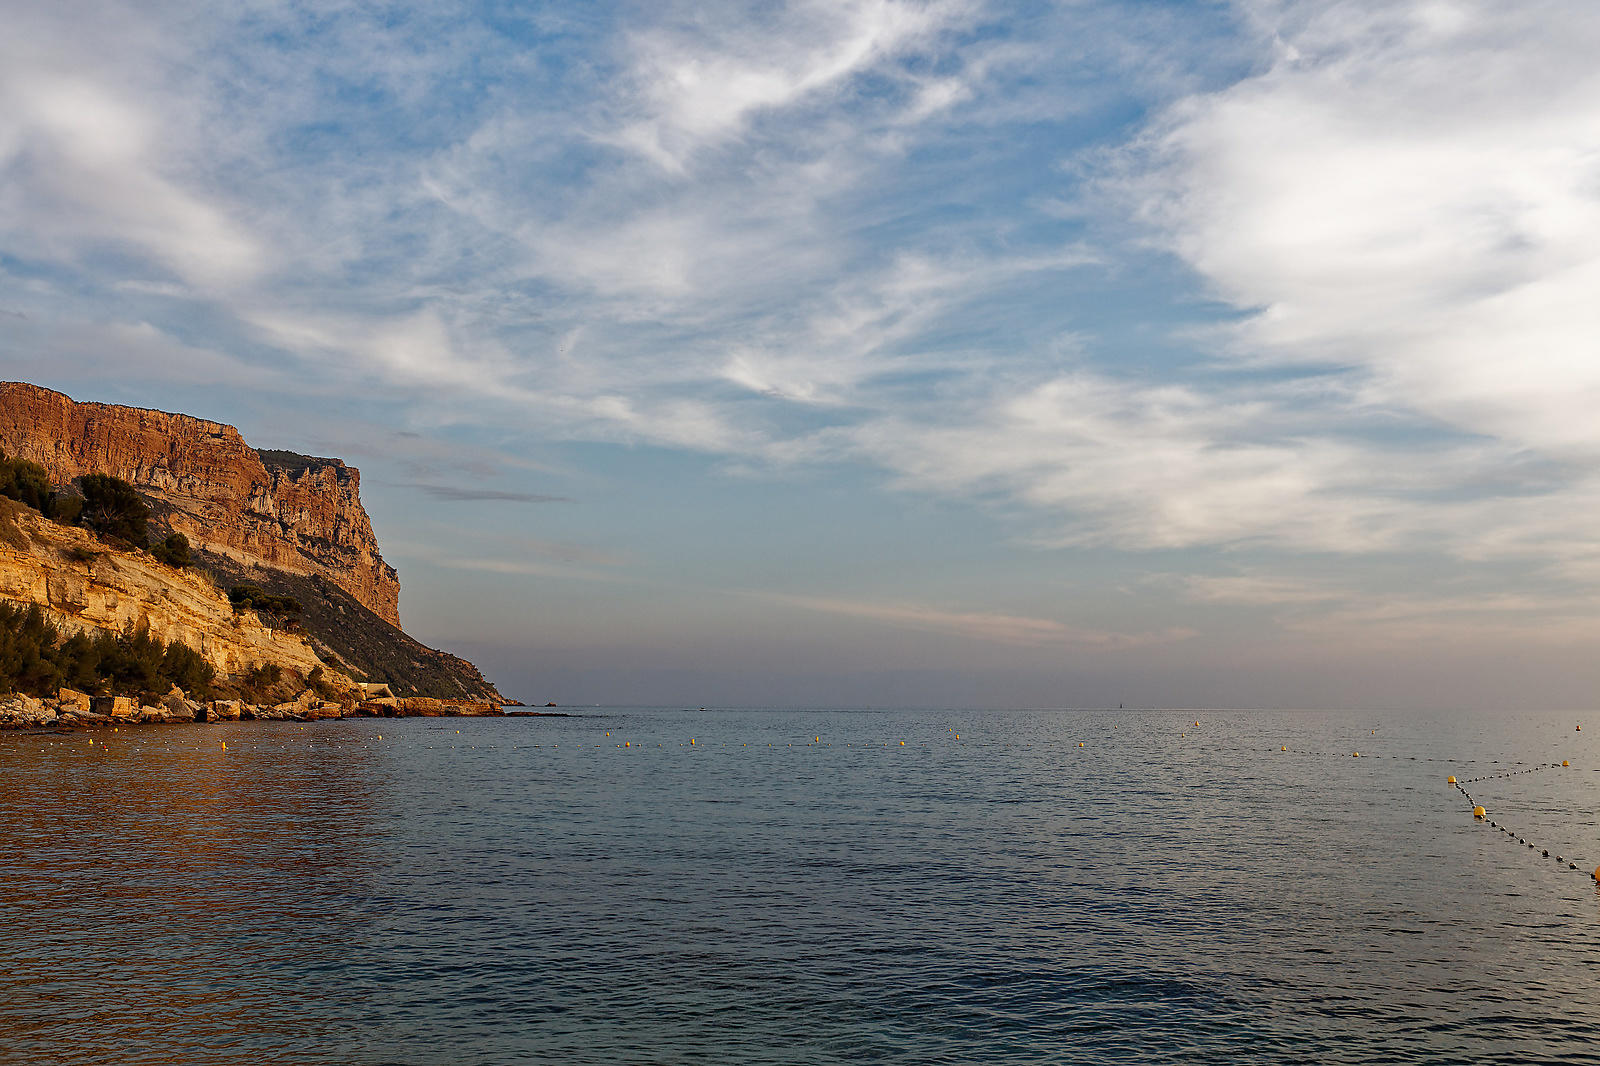 Cap Canaille cliff and Mediterranean (wide view)